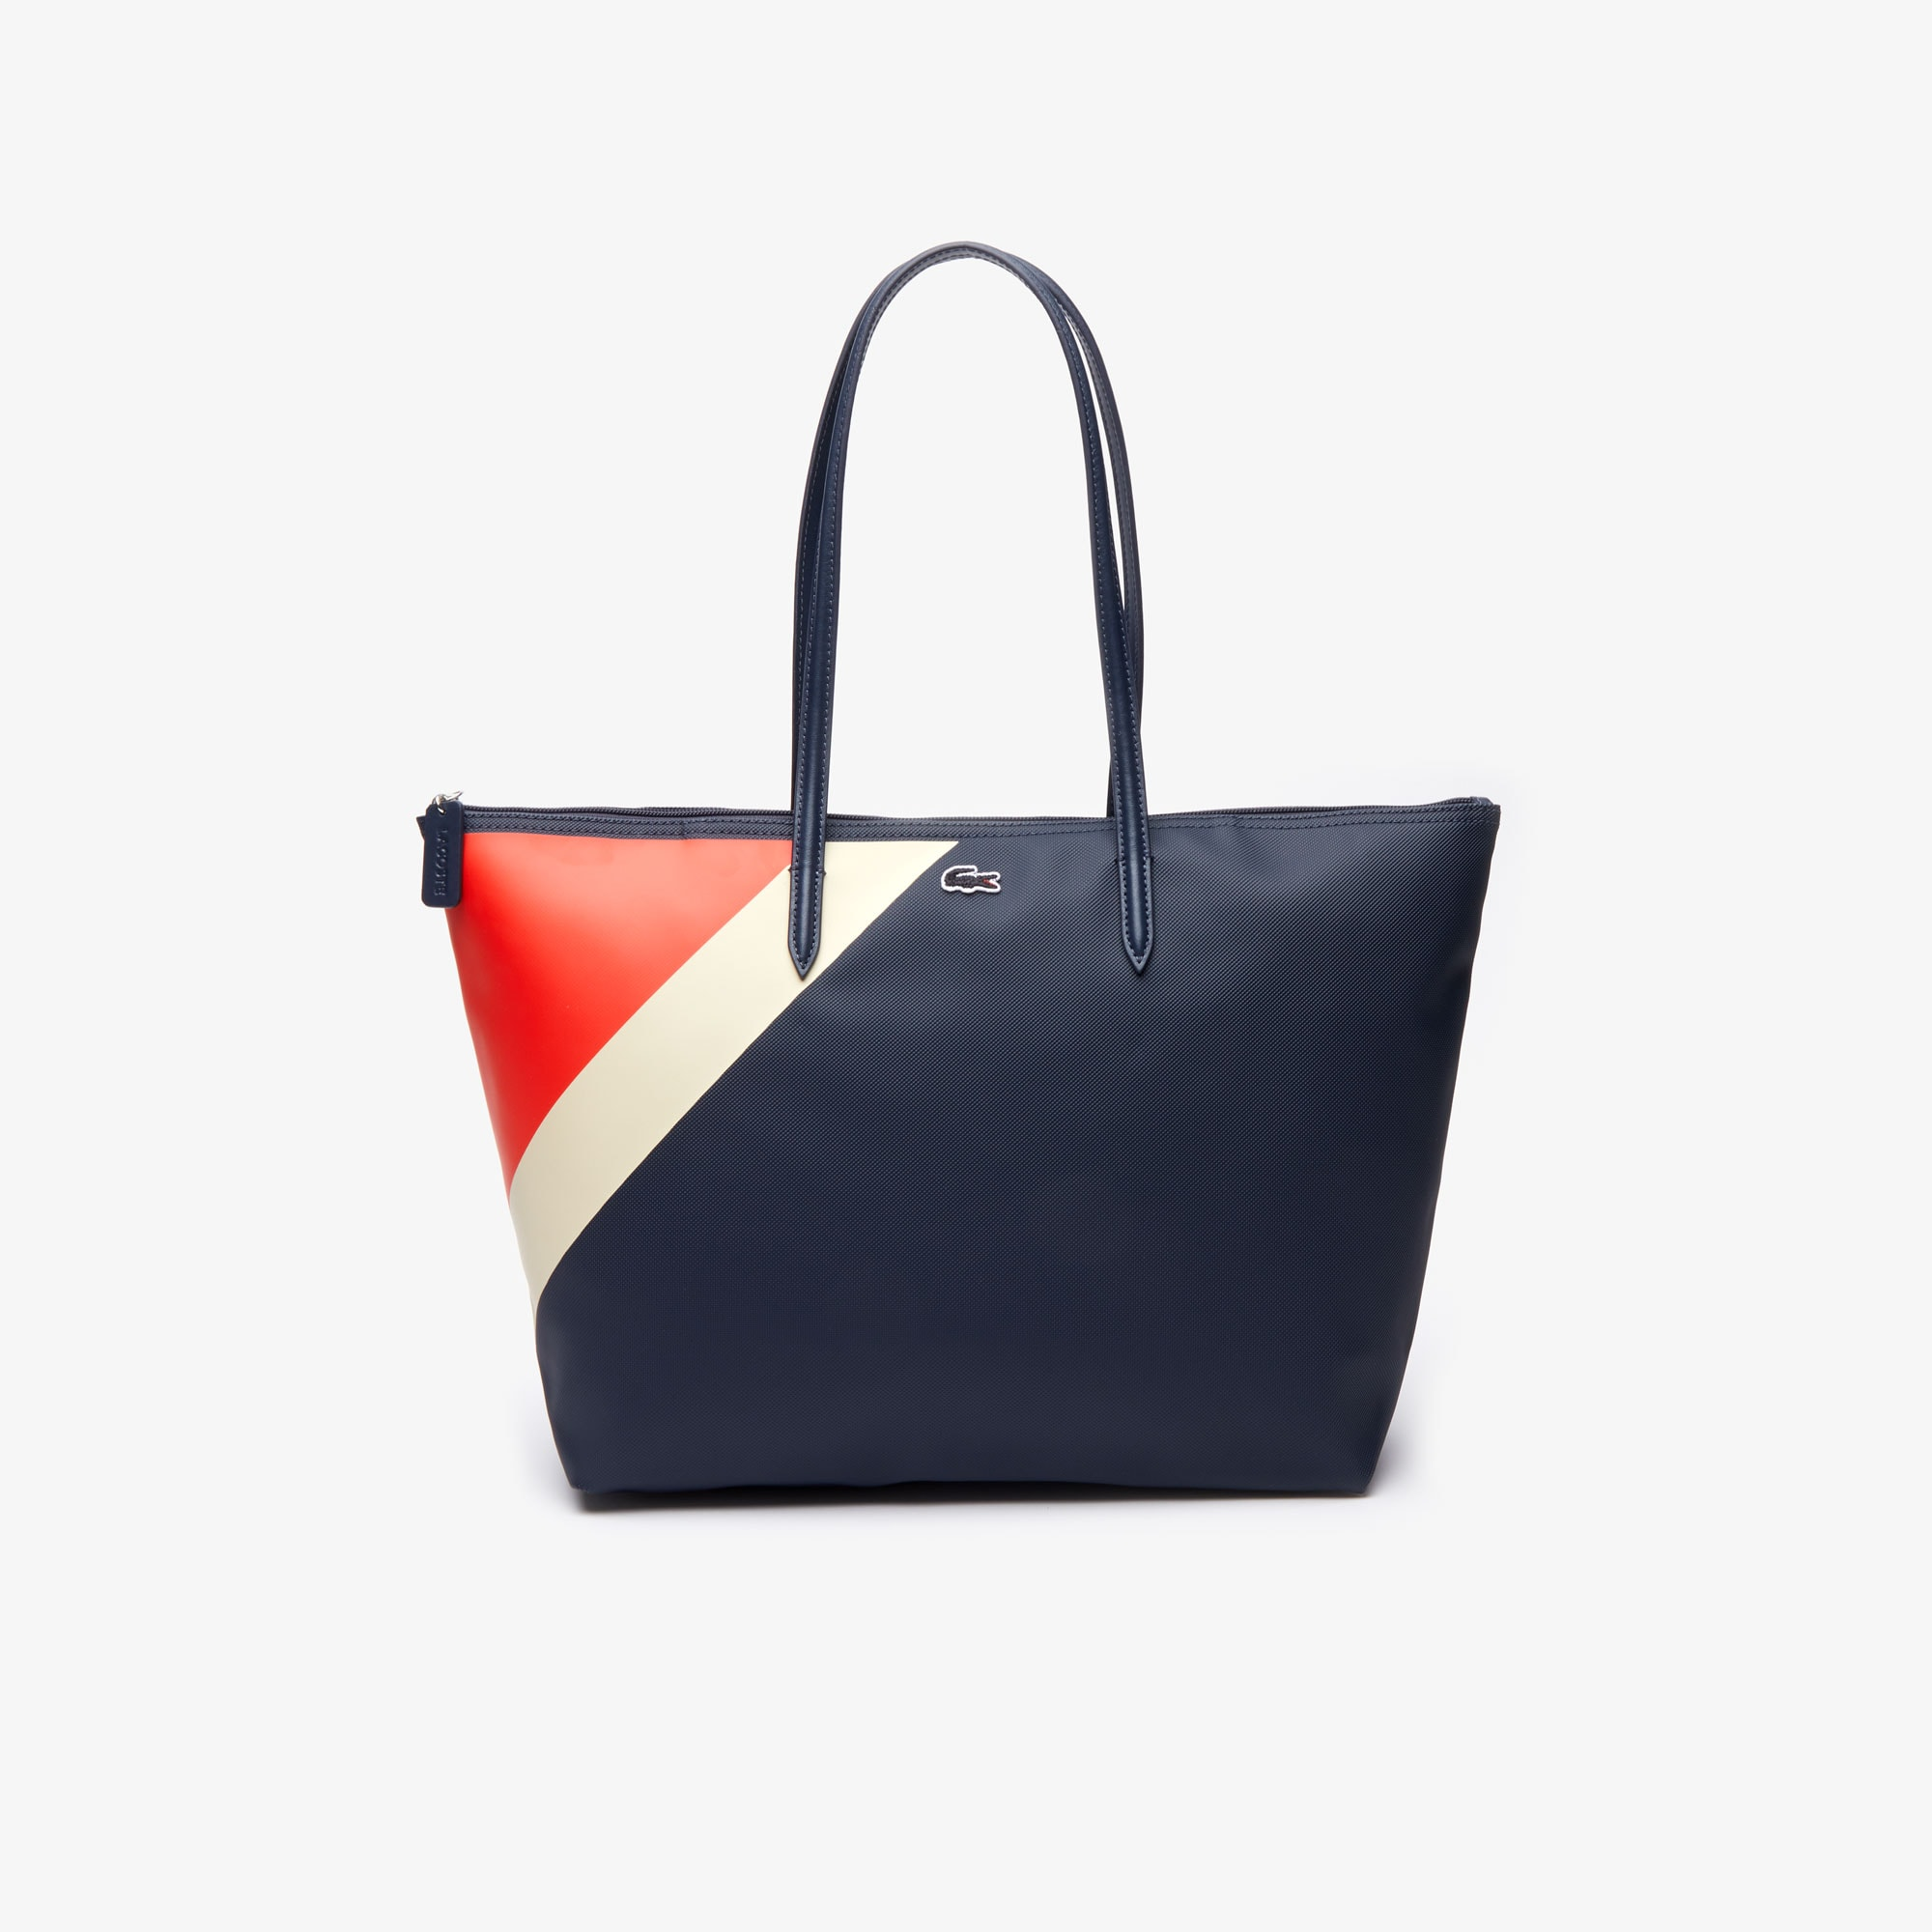 Grand sac cabas L.12.12 zippé tricolore